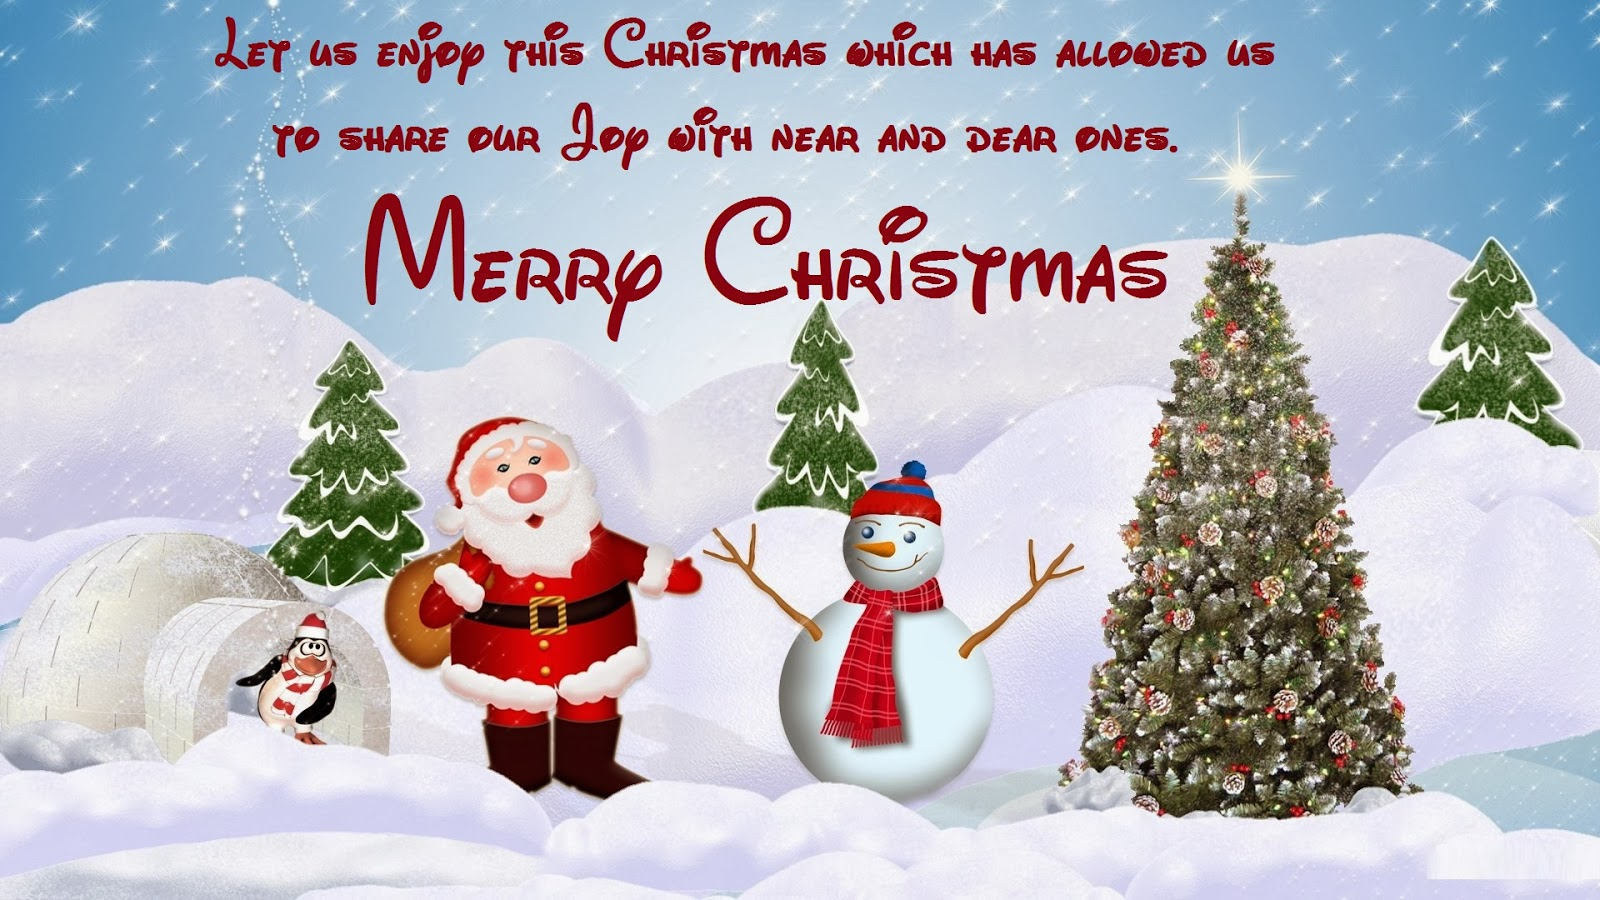 Top 100 short merry christmas quotes messages merry christmas messages kristyandbryce Gallery